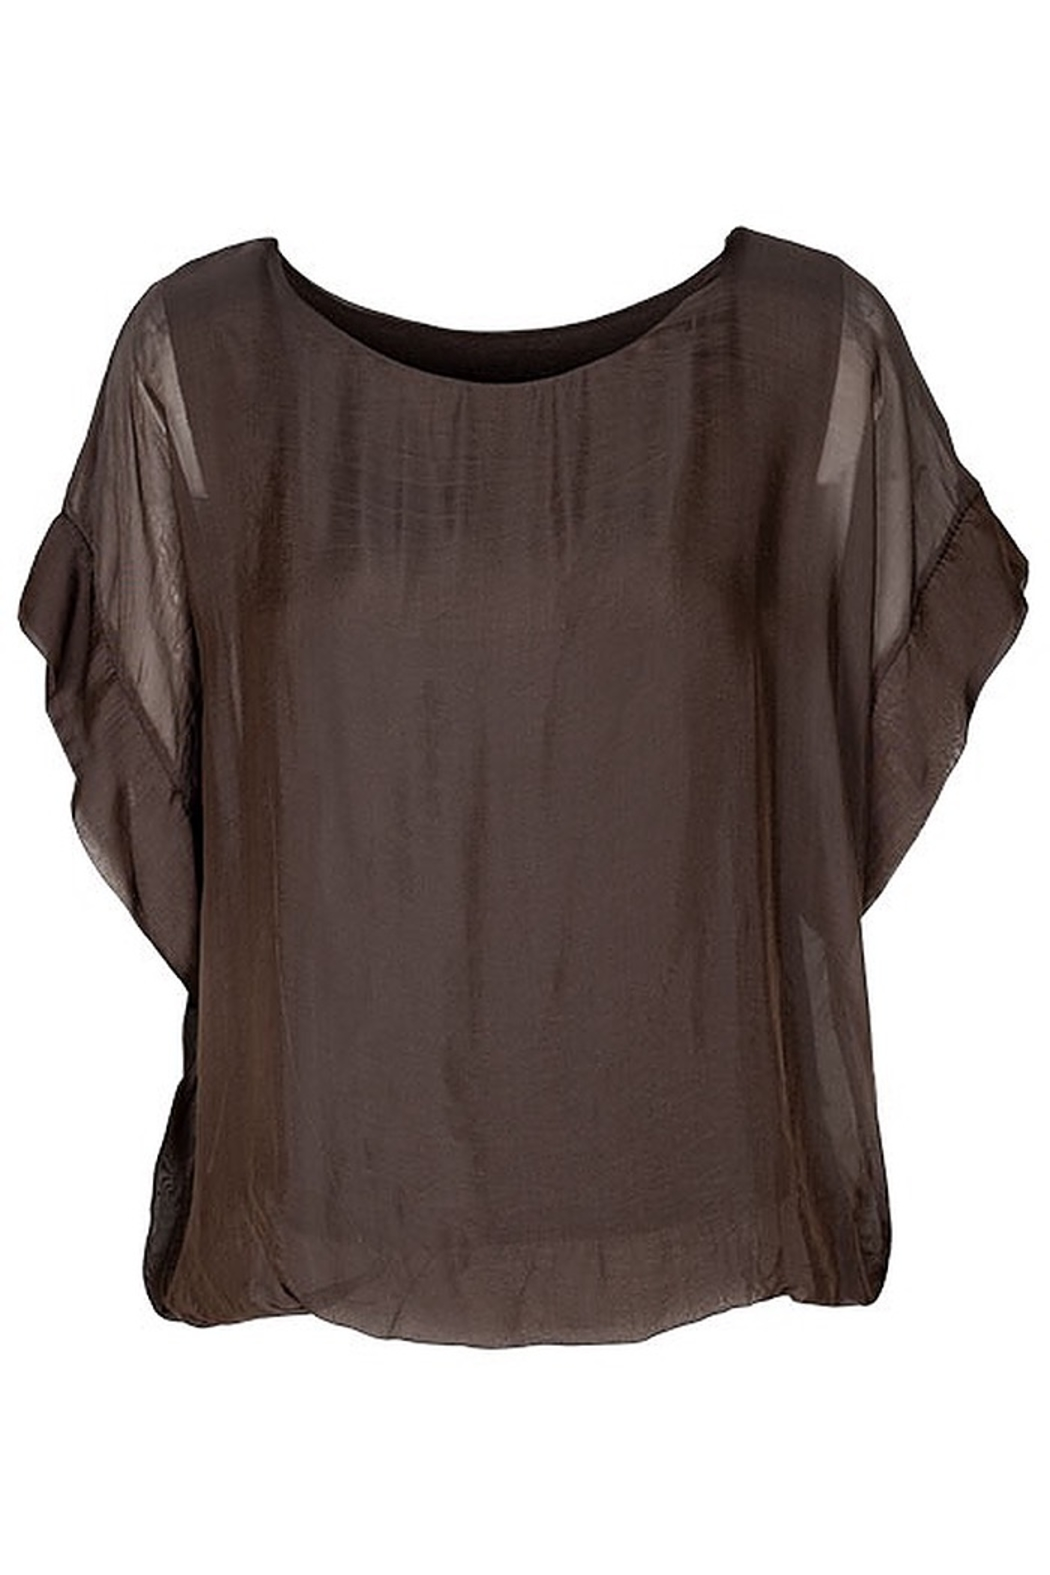 M made in Italy Chocolate Lined S/S Top - Main Image